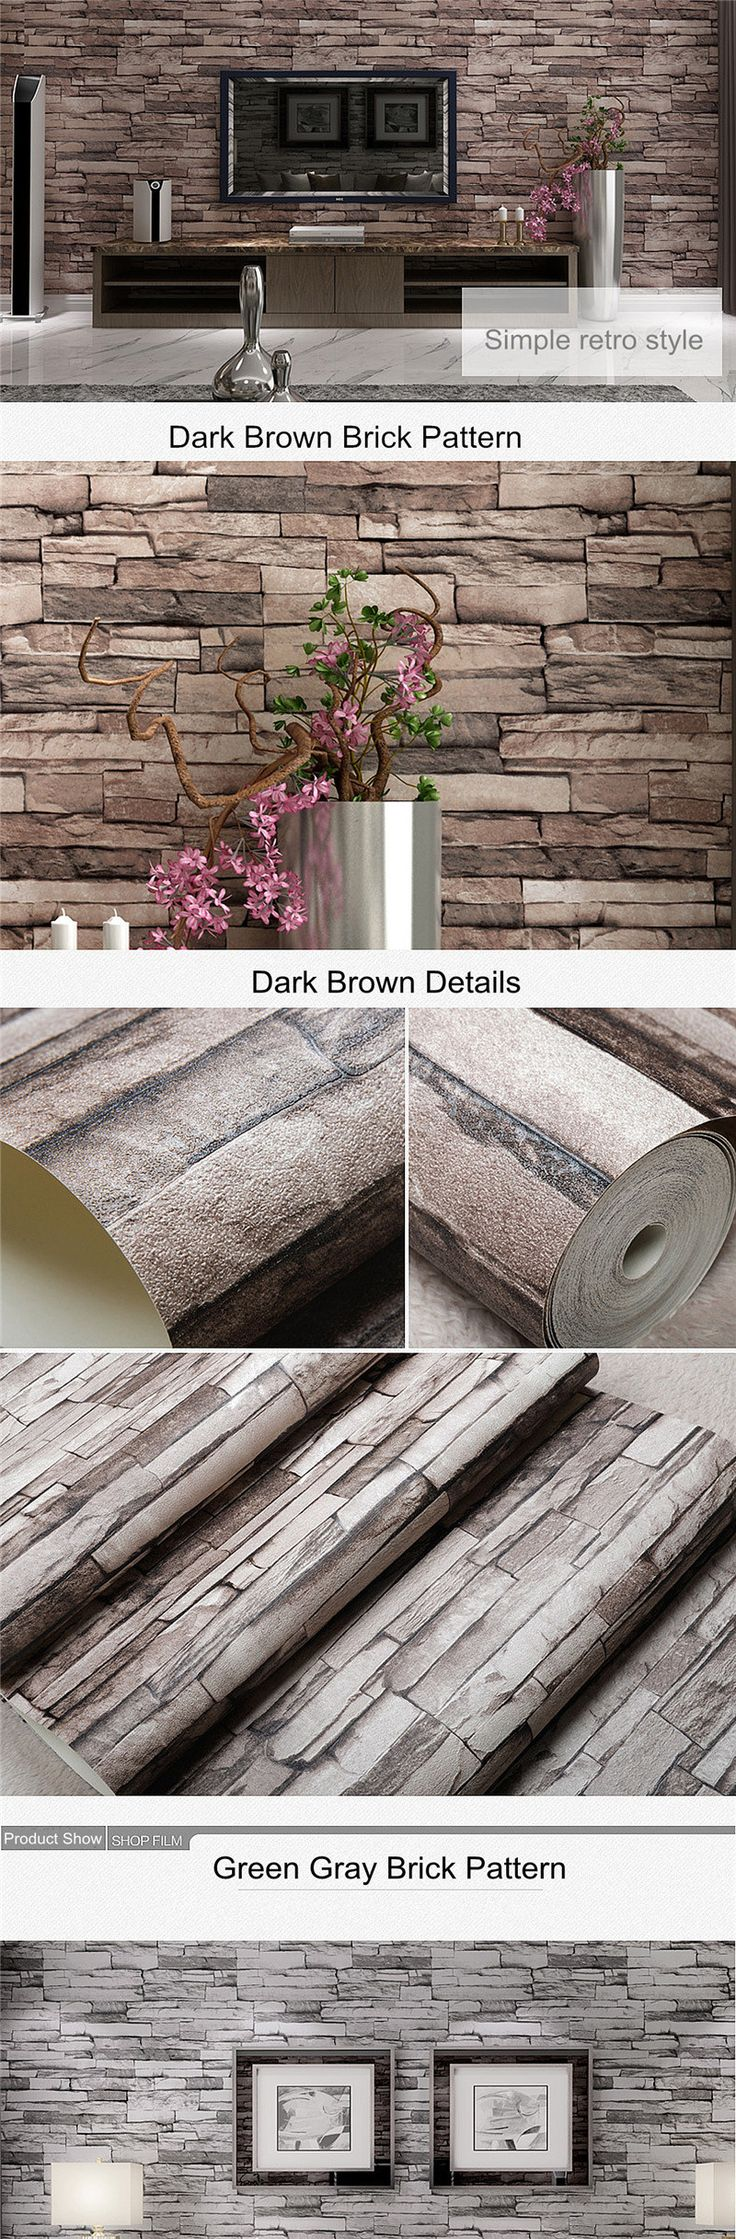 EU Direct | 10M 3D Wallpaper Roll PVC Brick Grain Waterproof Wallpaper Natural Wood Pulp Dul